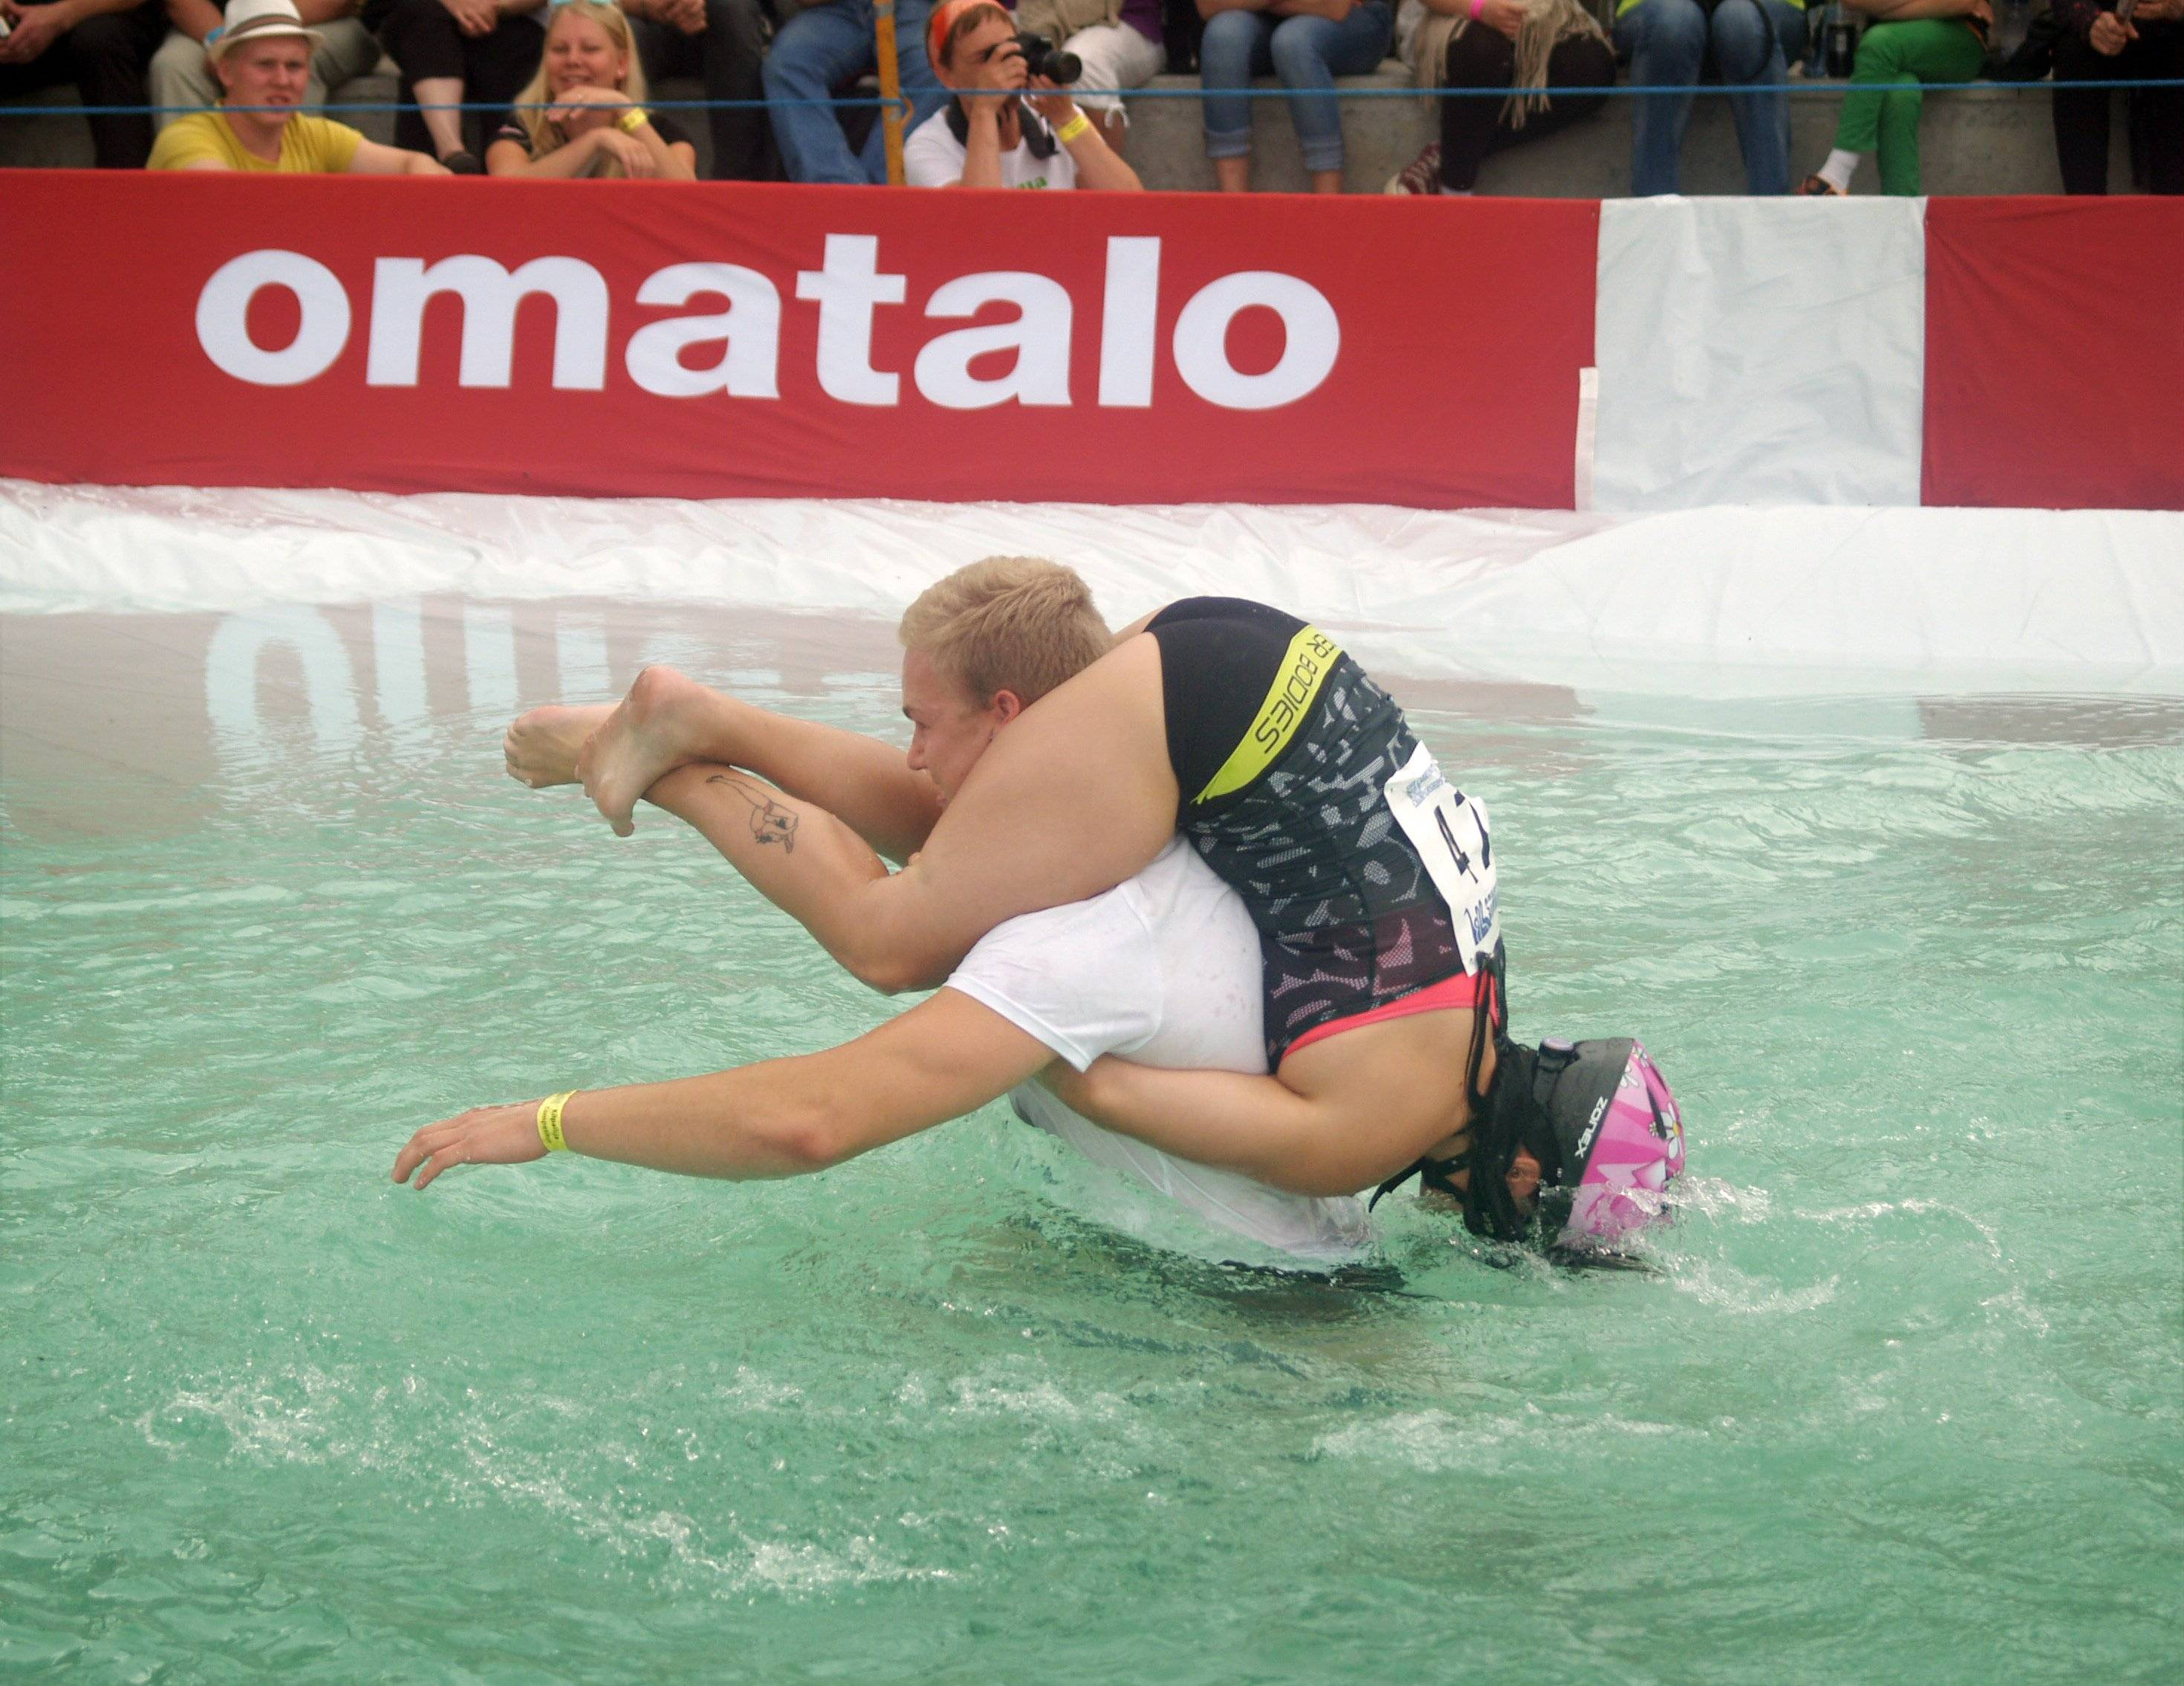 Ville Parviainen and Janette Oksman from Vantaa, Finland go on Saturday to win the Wife Carrying World Championships, held in Sonkajarvi, Finland.